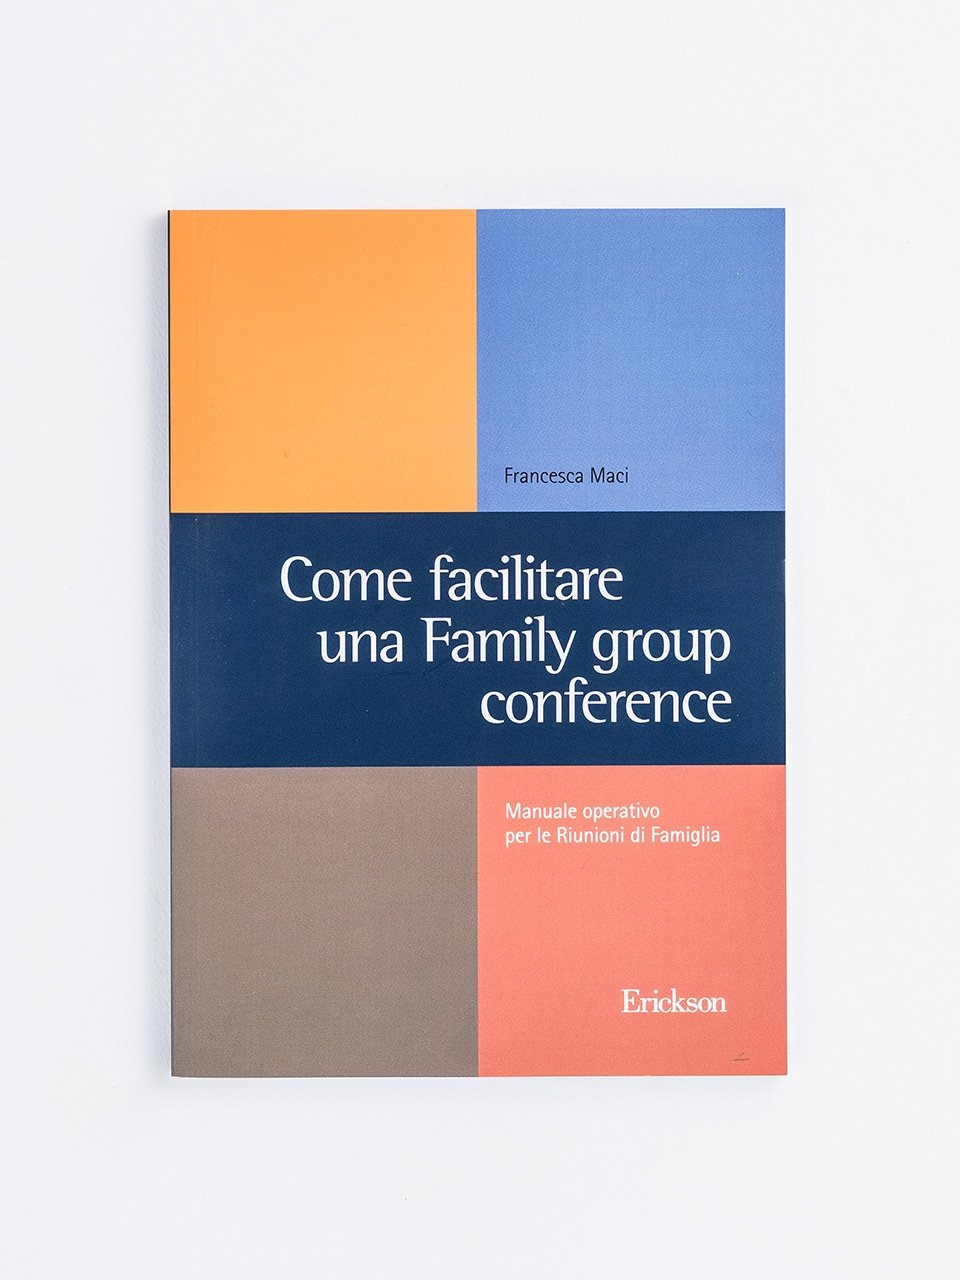 Come facilitare una Family group conference - Didattica inclusiva con la LIM - Libri - Erickson